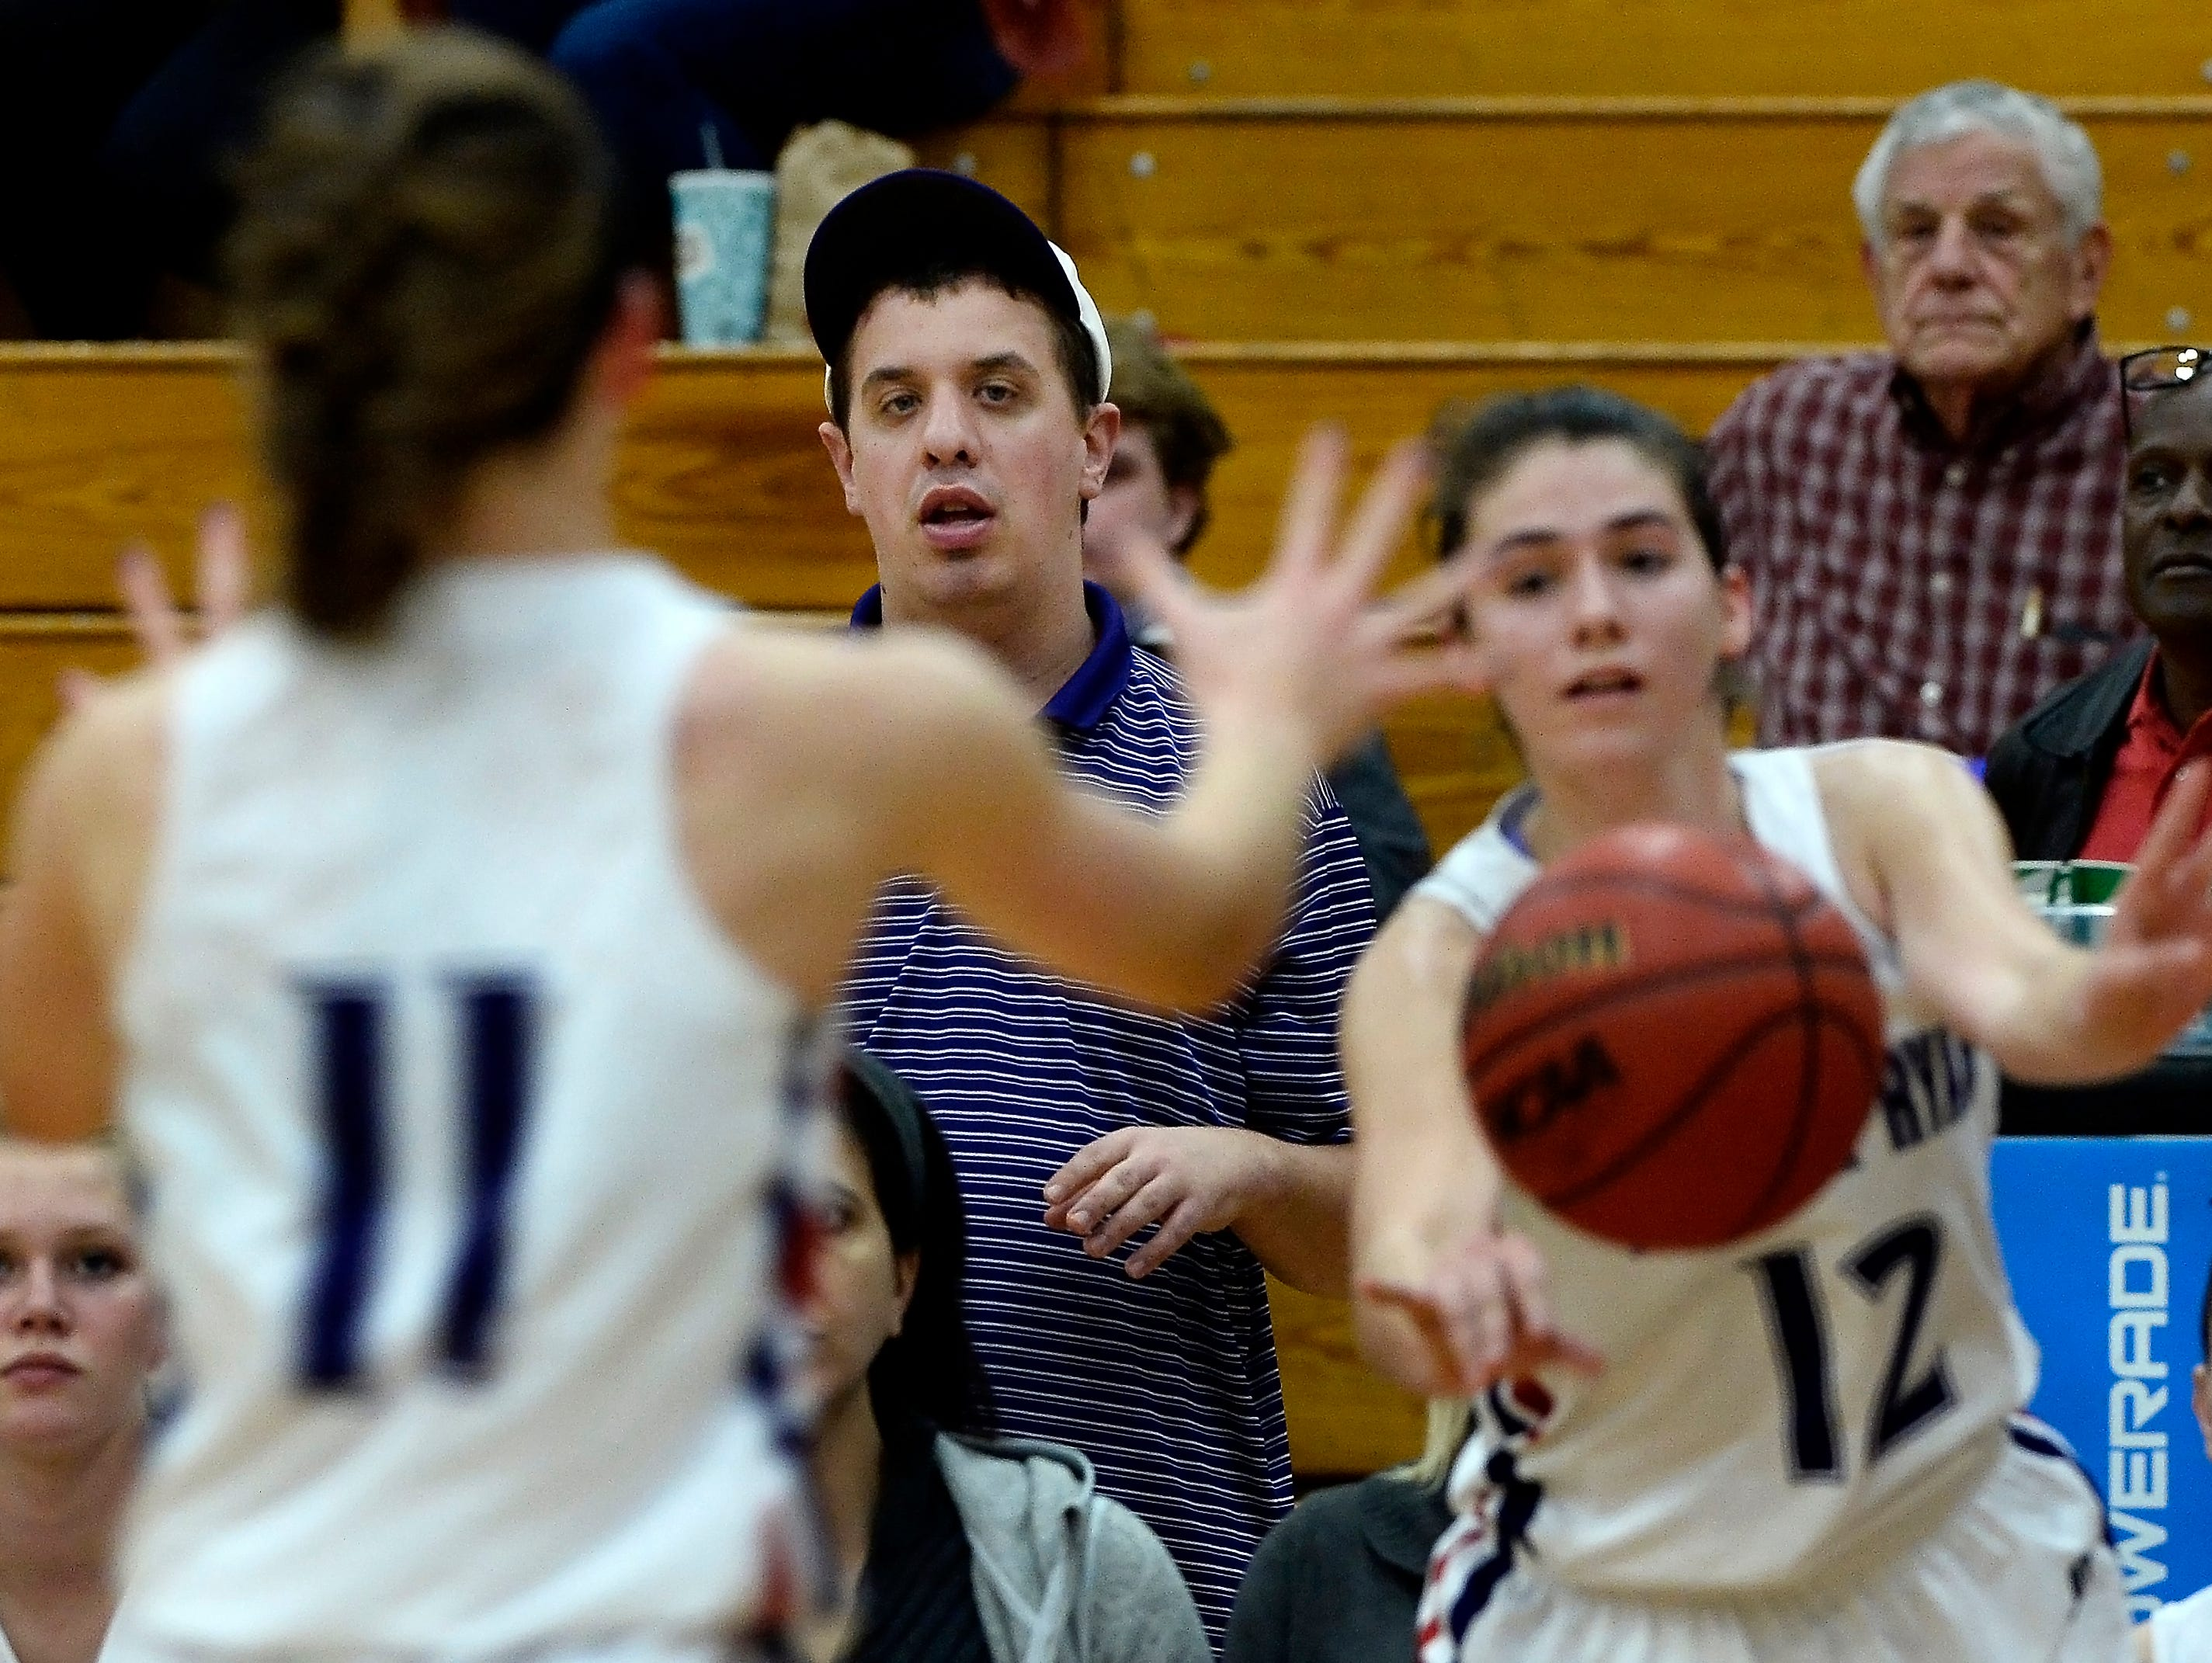 Sean Druffel watches Father Ryan High School girls varsity basketball players Audrey Burdge (11) and Olivia Rolick (12) play during a game on Tuesday, Jan 5, 2016, in Nashville, Tenn.